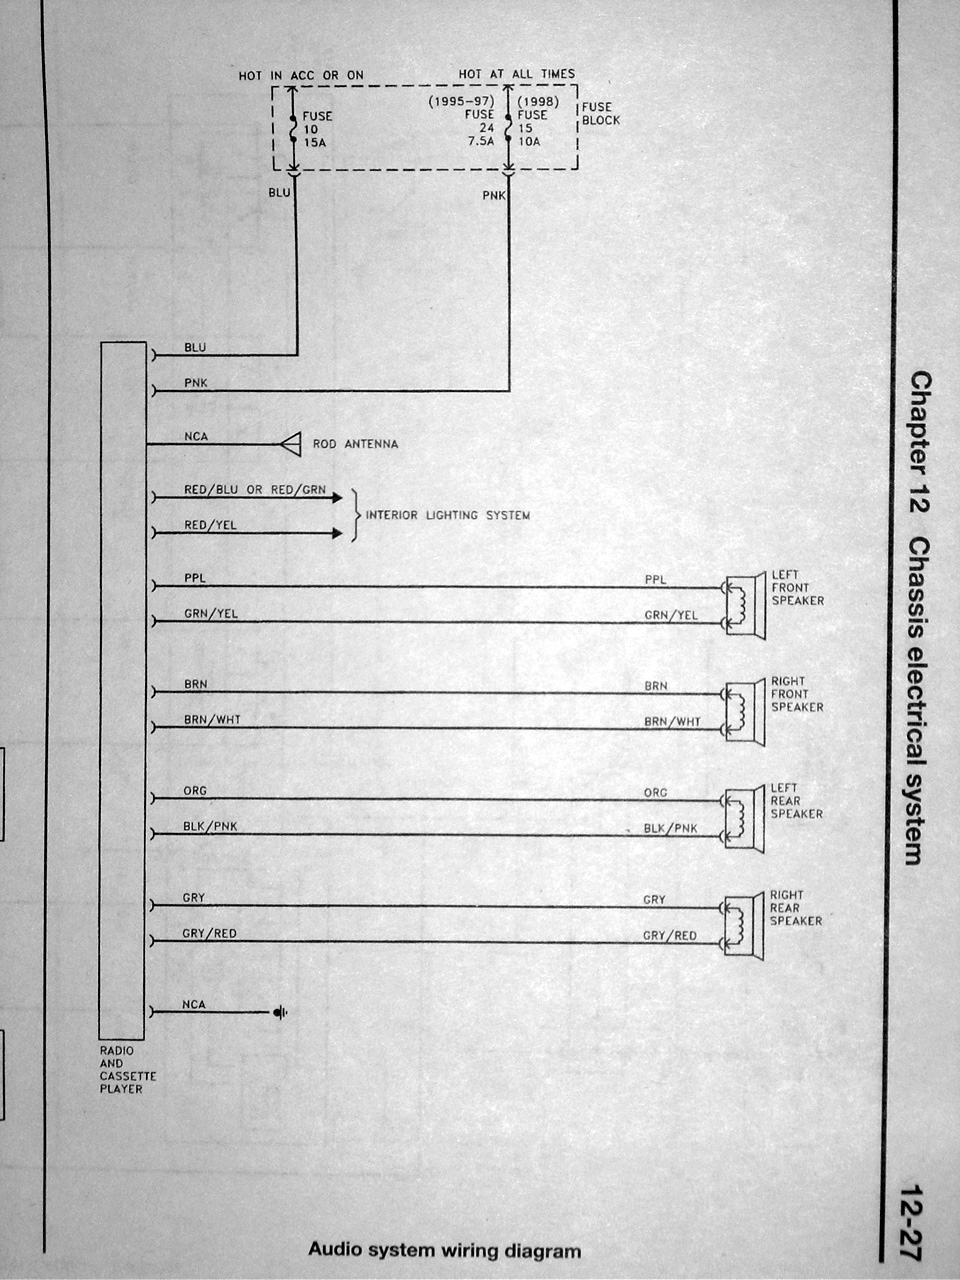 DSC01849 wiring diagram thread *useful info* nissan forum GM Radio Wiring Diagram at bayanpartner.co